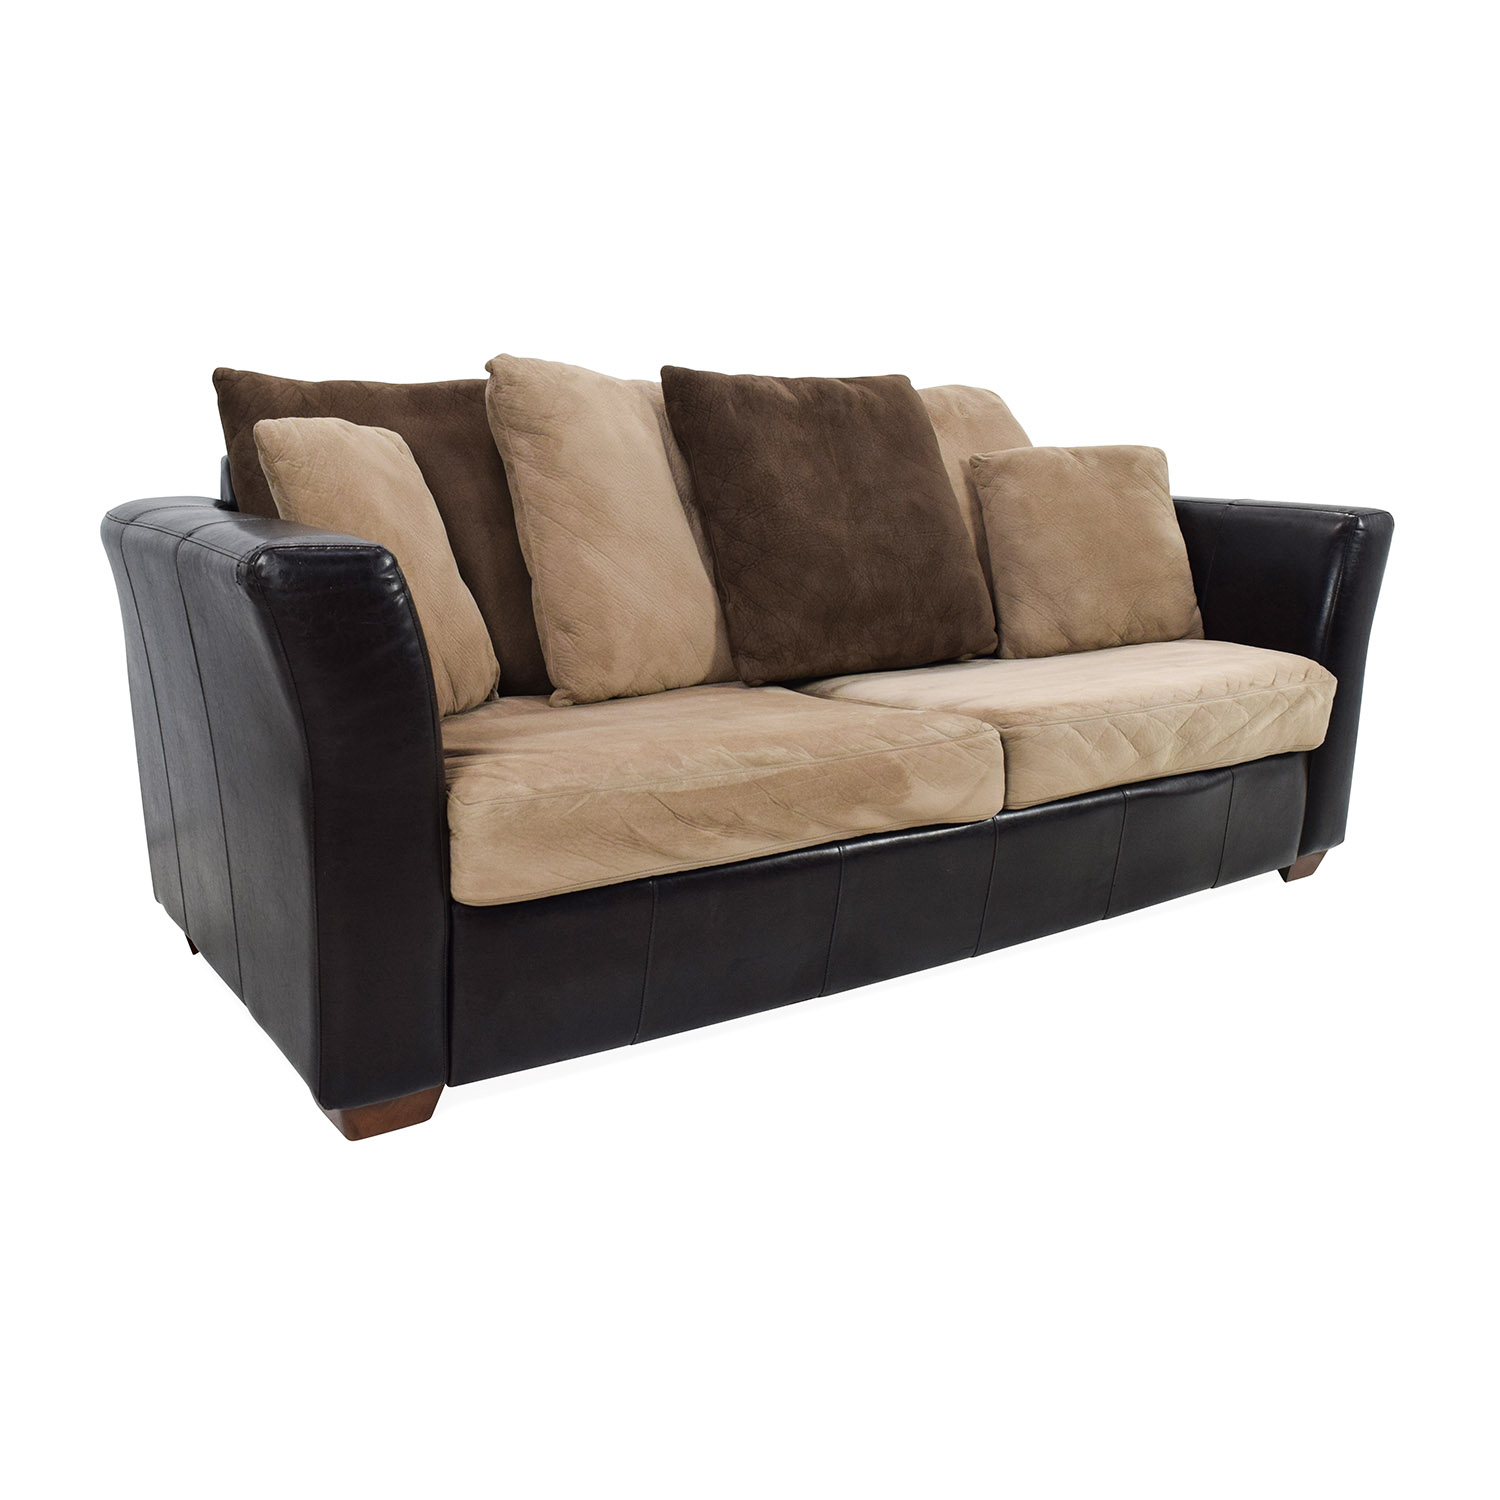 jennifer convertibles leather reclining sofa round chair 81 off